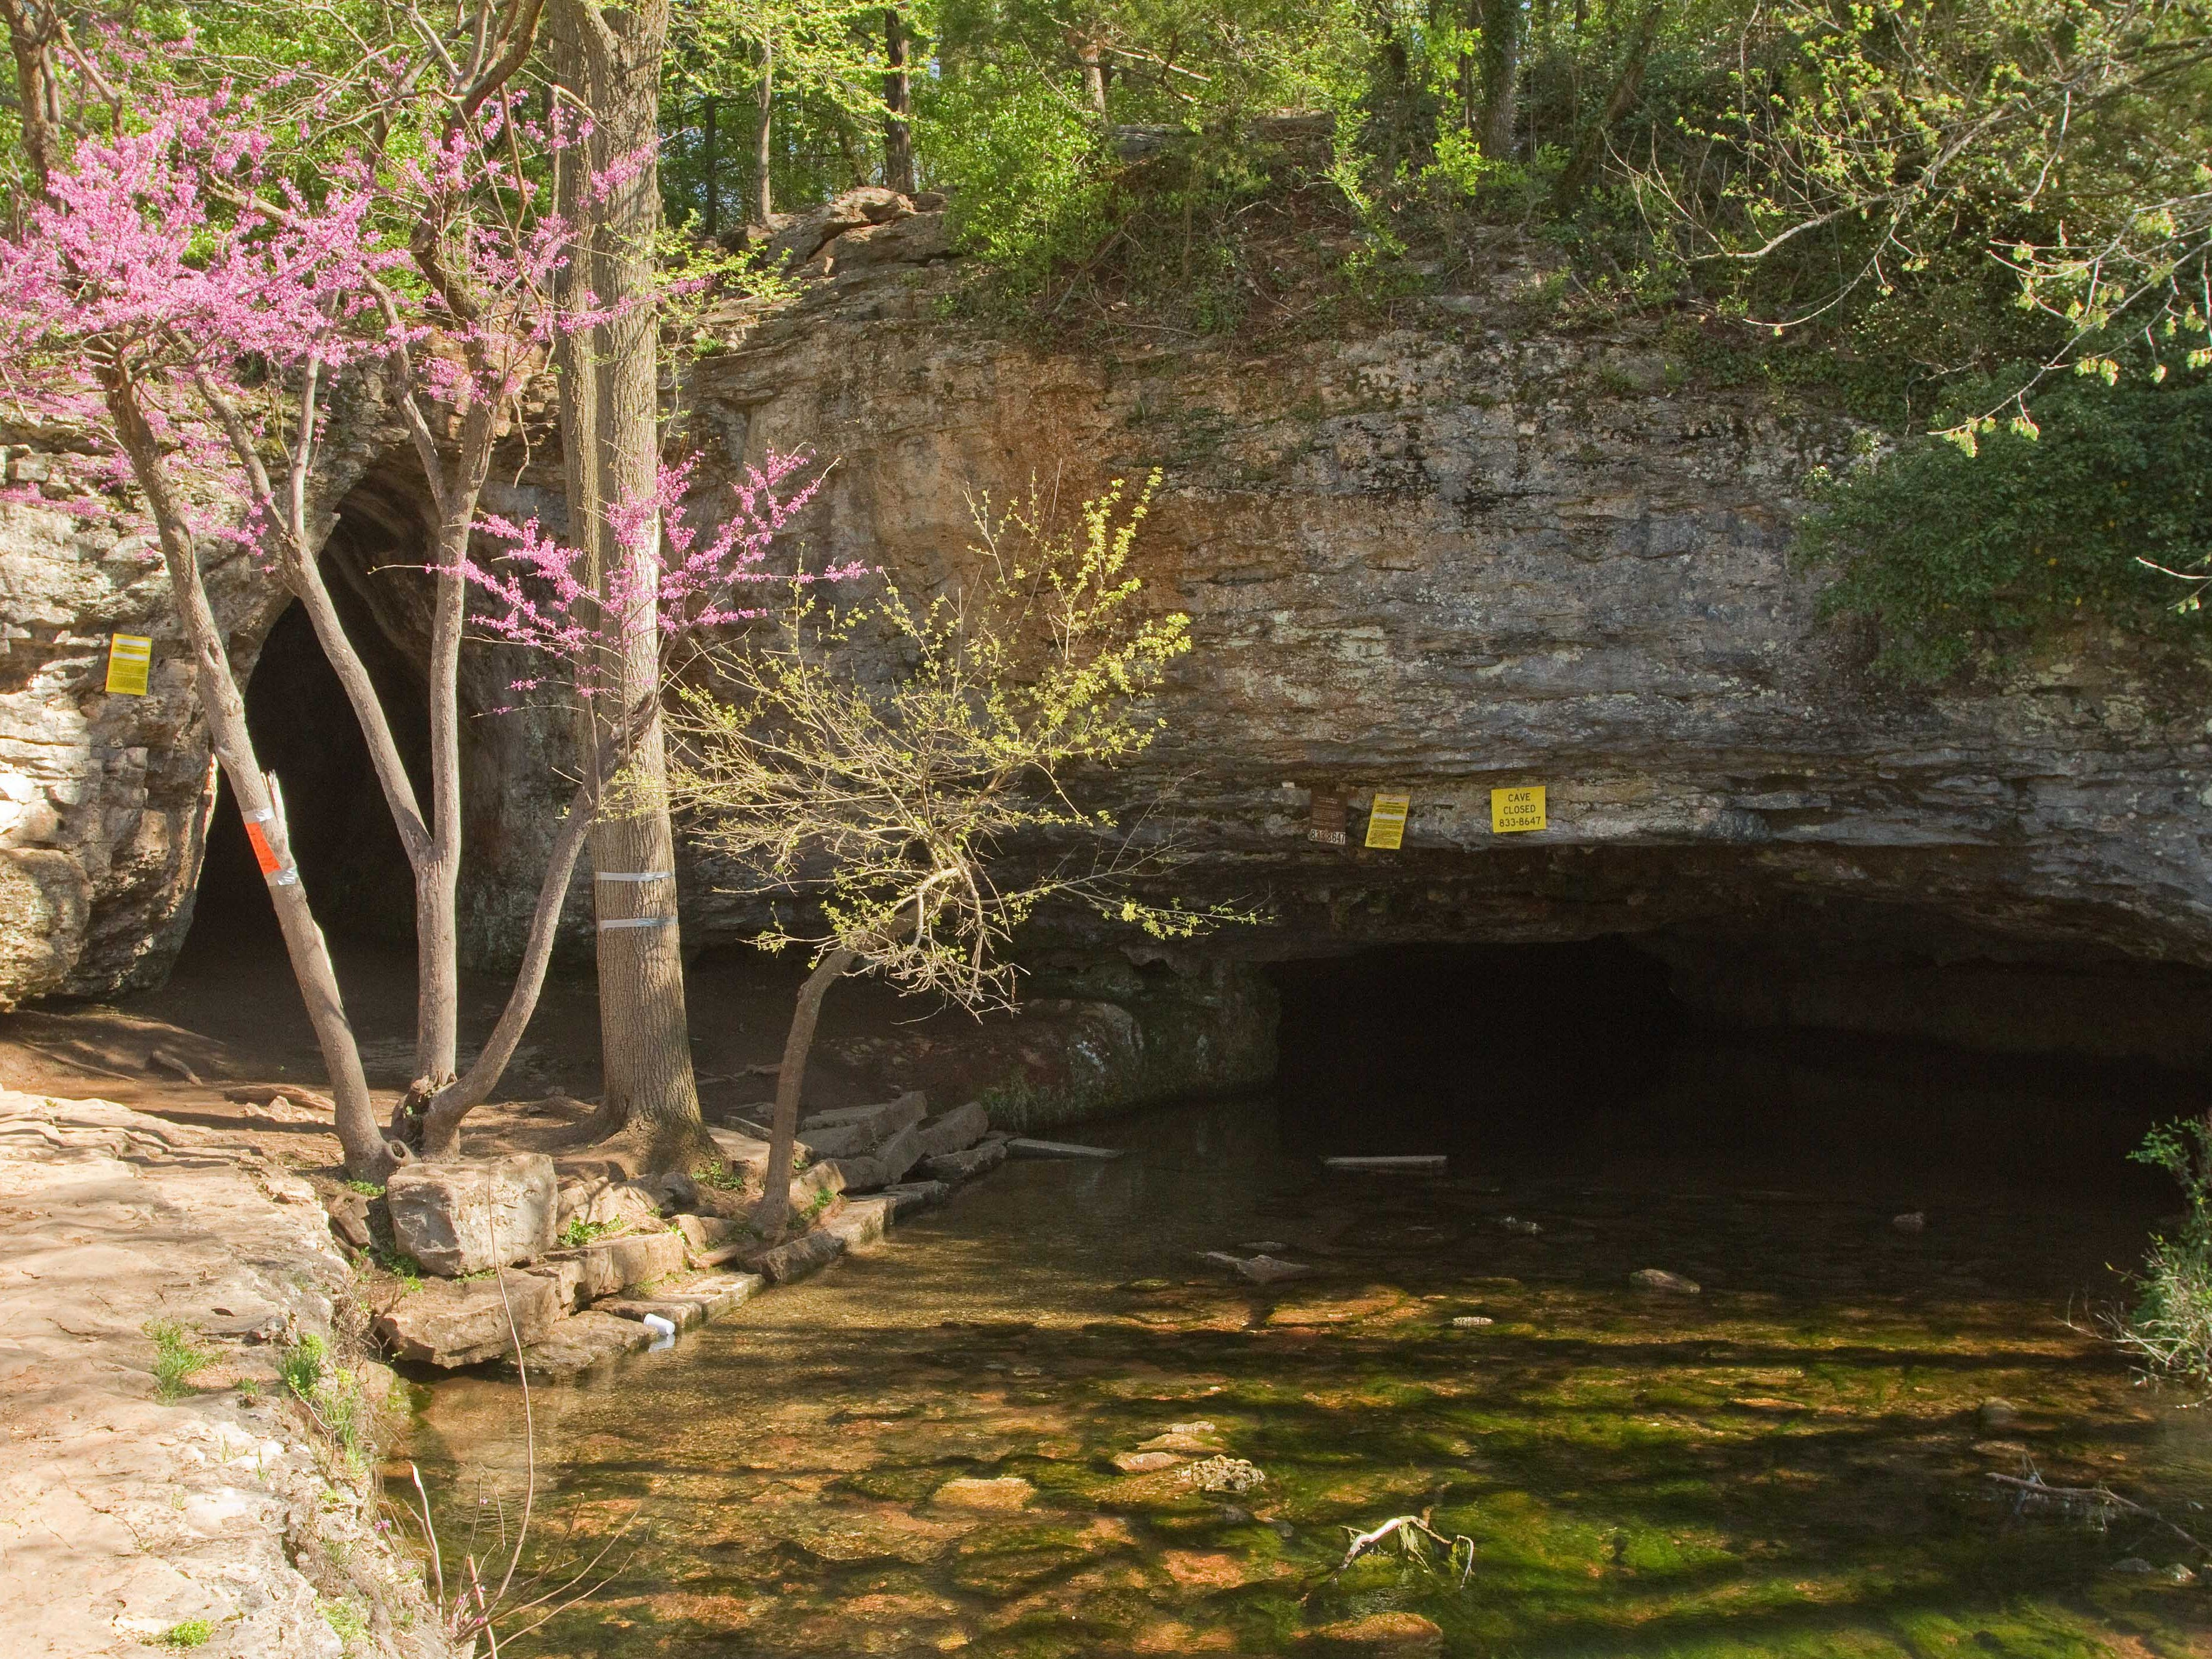 The caves at Sequiota Park are clearly marked as closed to deter humans during the gray bat migration.